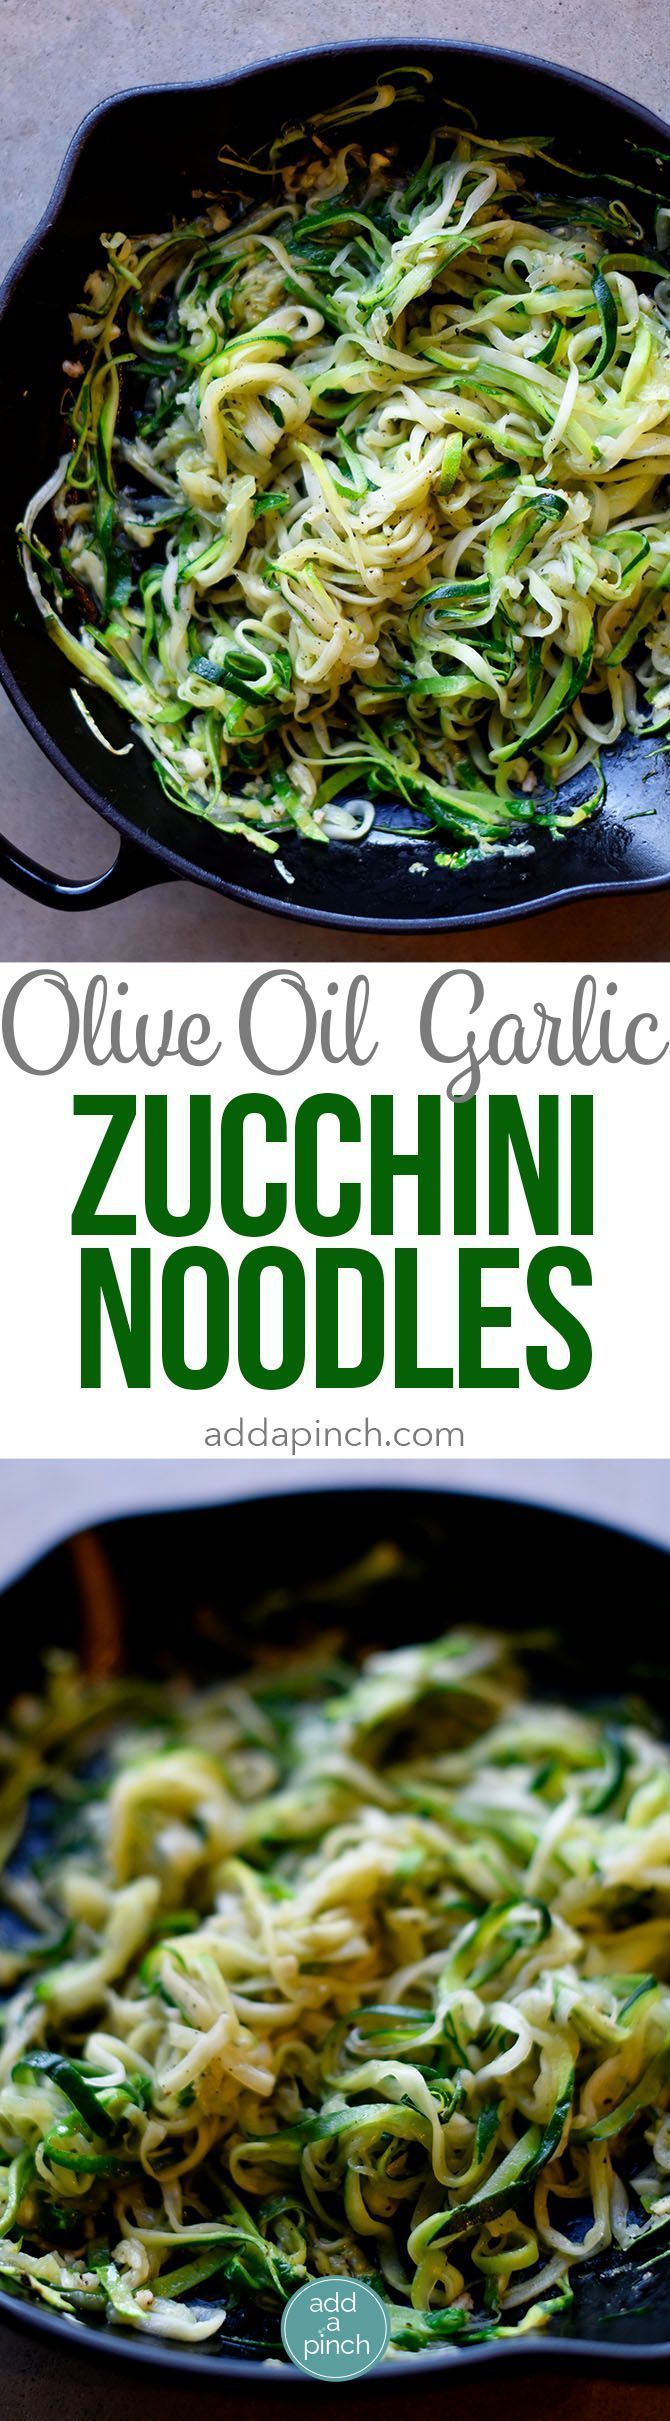 Olive Oil Garlic Zucchini Noodles Recipe - These Olive Oil Garlic Zucchini Noodles are fast and fabulous for a quick and easy way to incorporate more vegetables into your meals! Made with just a handful of ingredients and ready in minutes! // addapinch.co